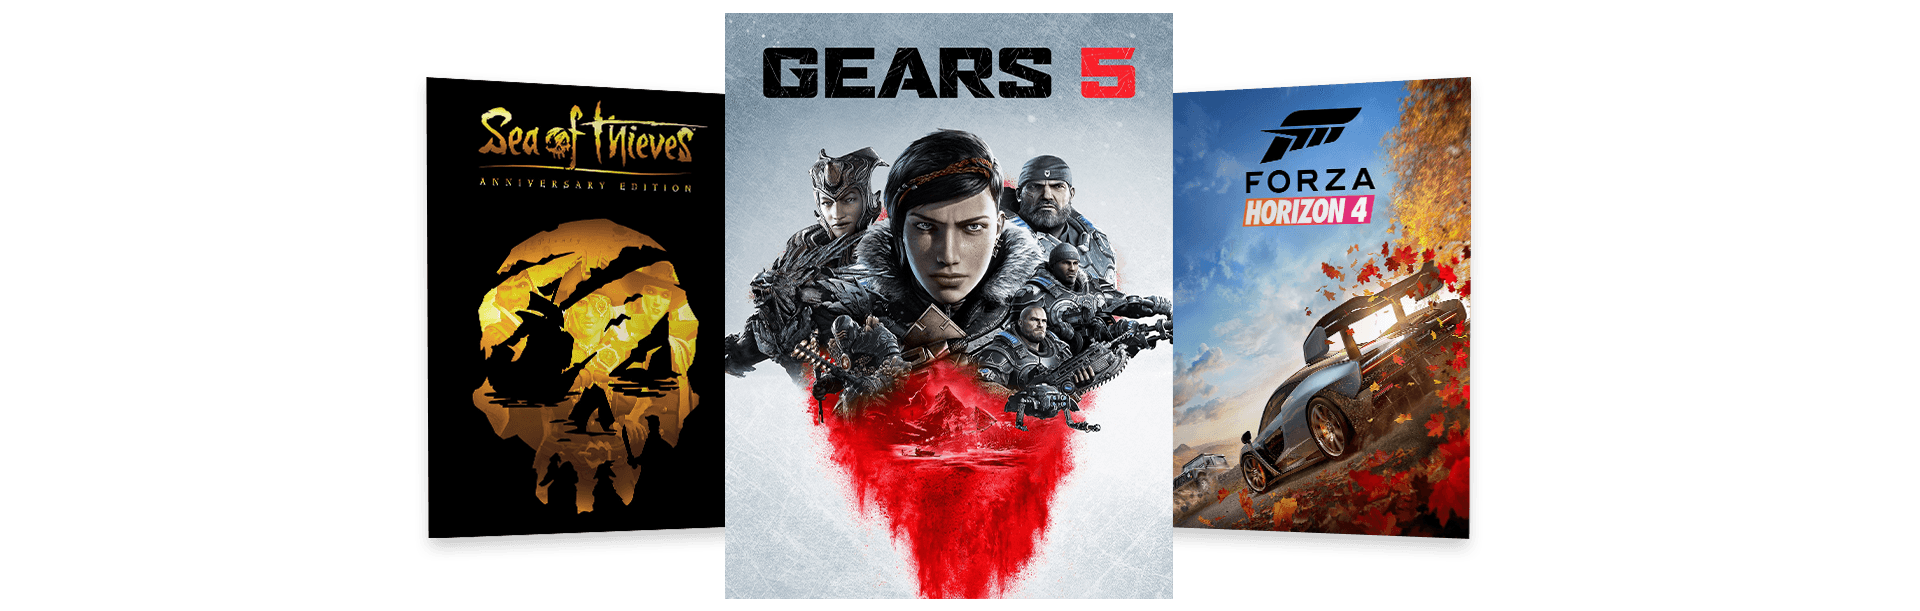 Gears 5, Sea of Thieves and Forza Horizon 4 box art arranged in a fan pattern